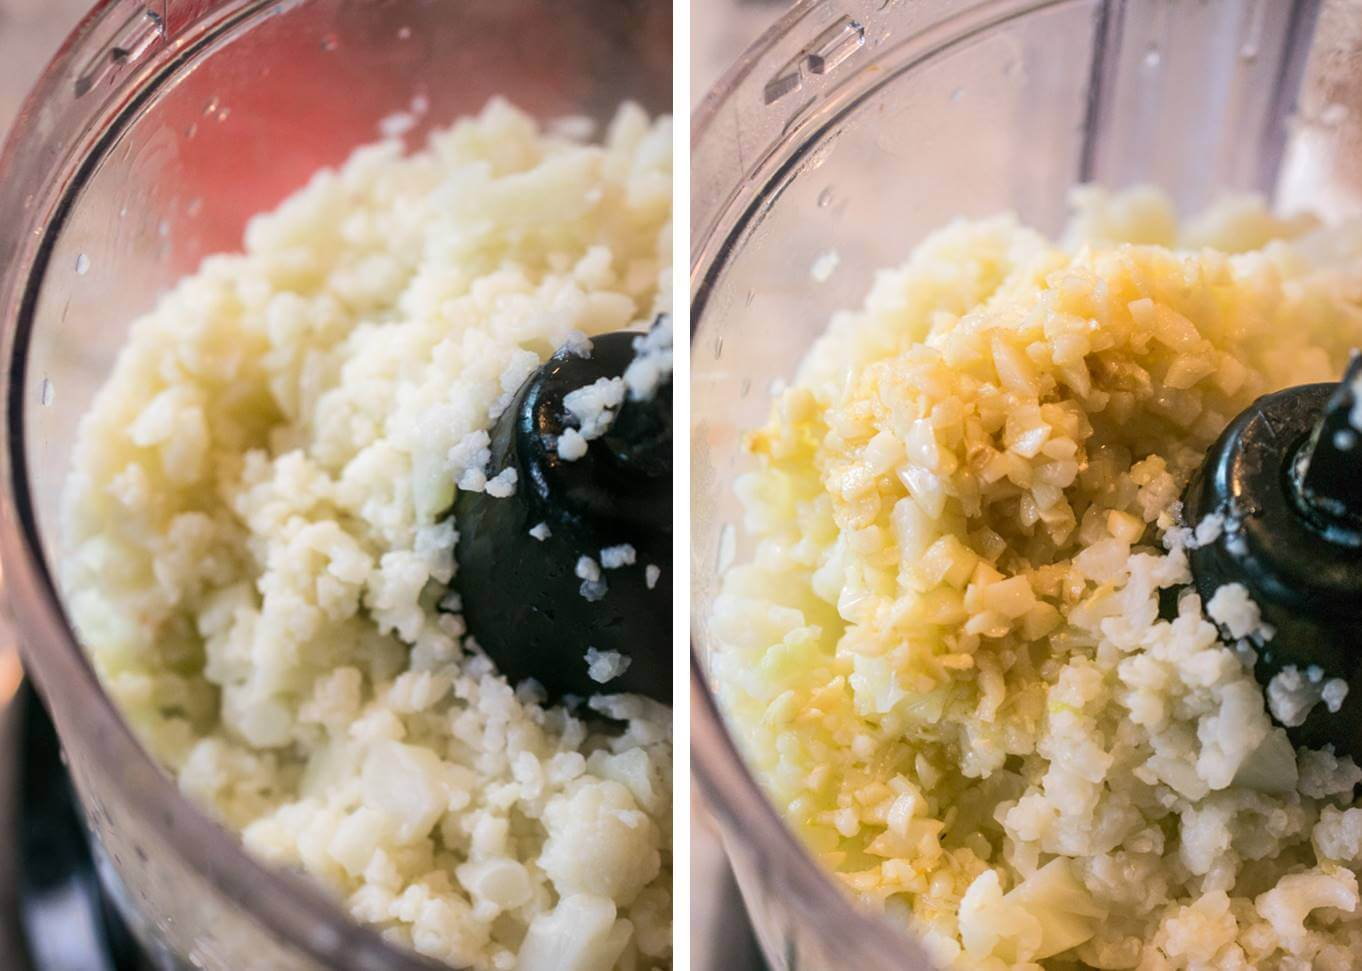 Cauliflower pieces and sauteed garlic being blended together in a food processor